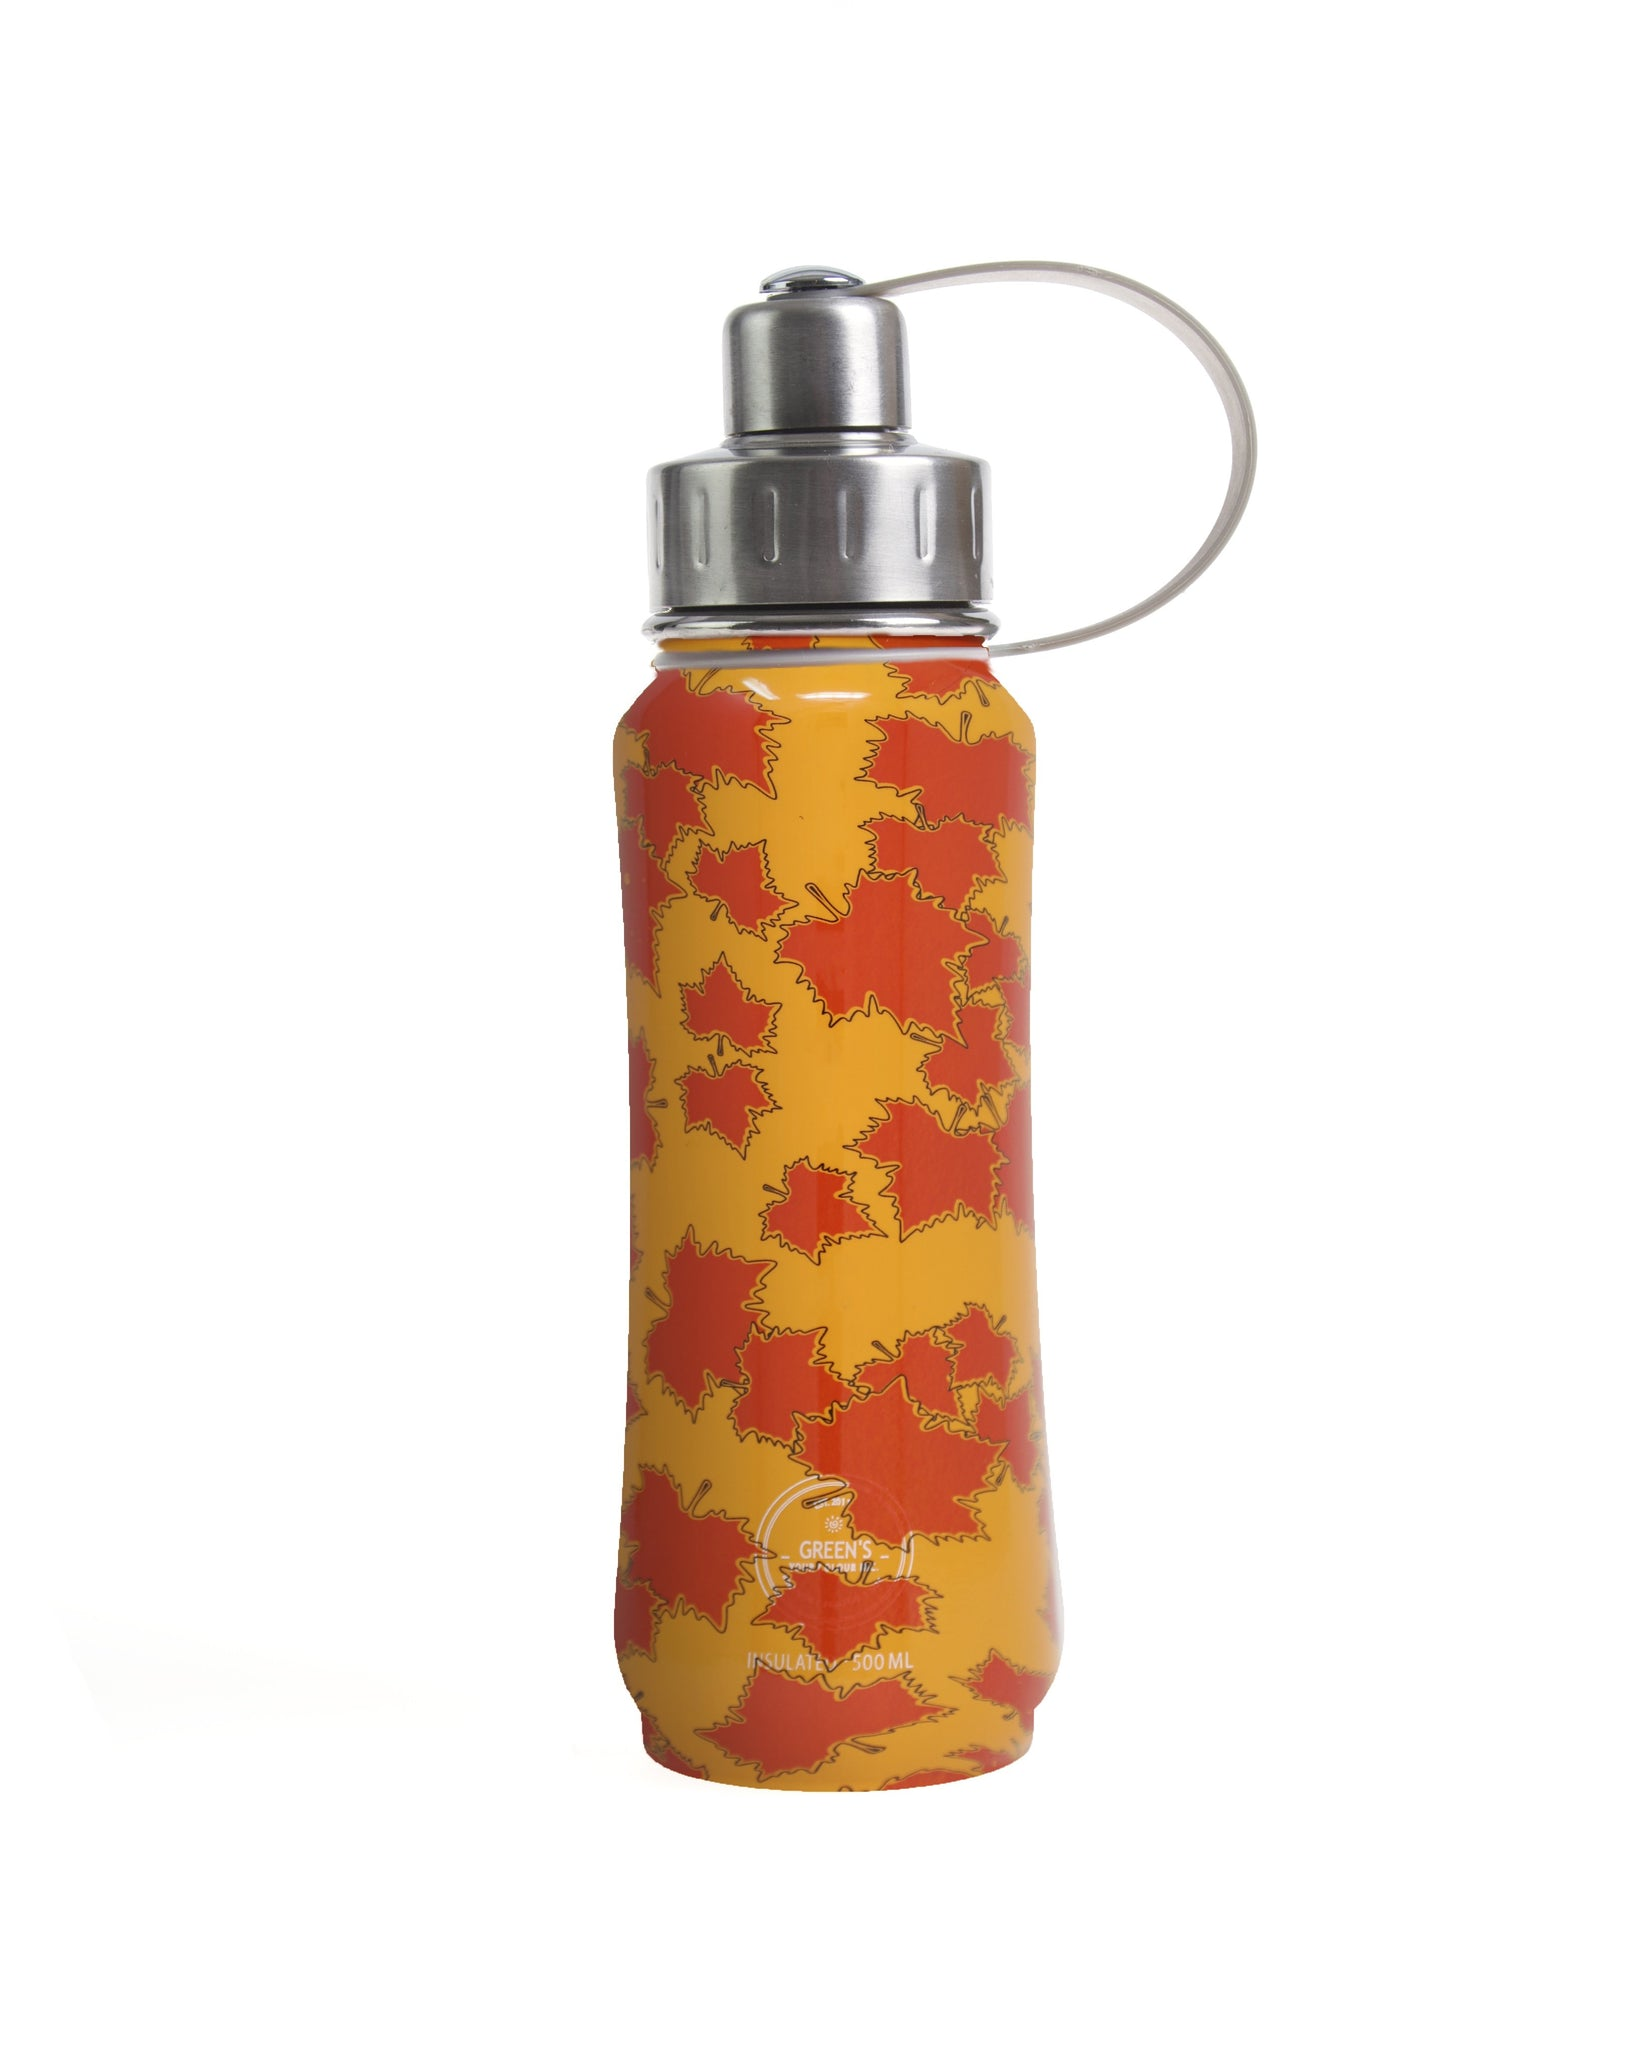 500 ml Orange Eh Canada! insulated vacuum stainless steel leak-proof water bottle carrying handle silver lid